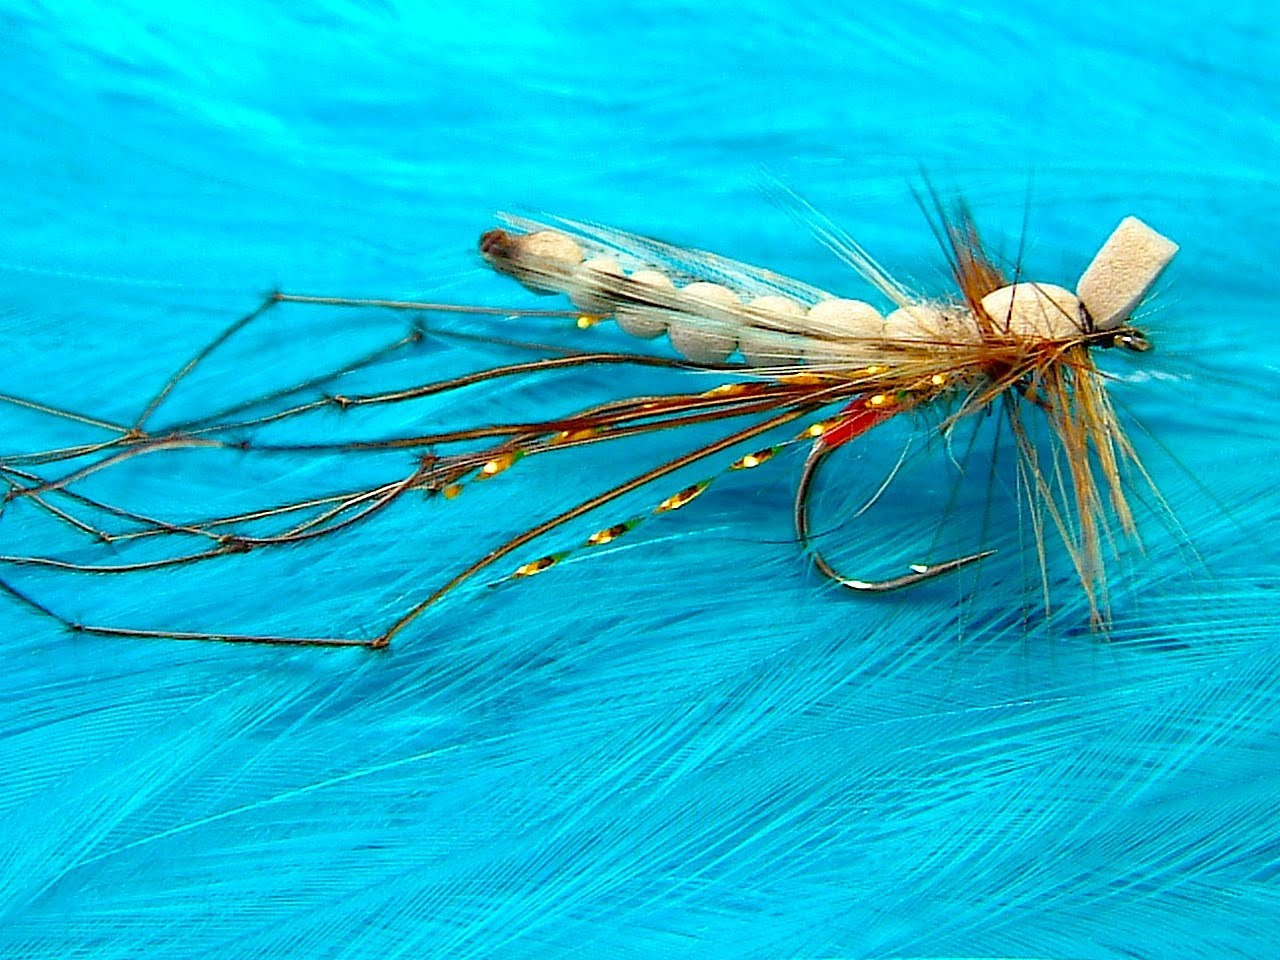 [Video] How to Make Knotted Pheasant Tail Legs